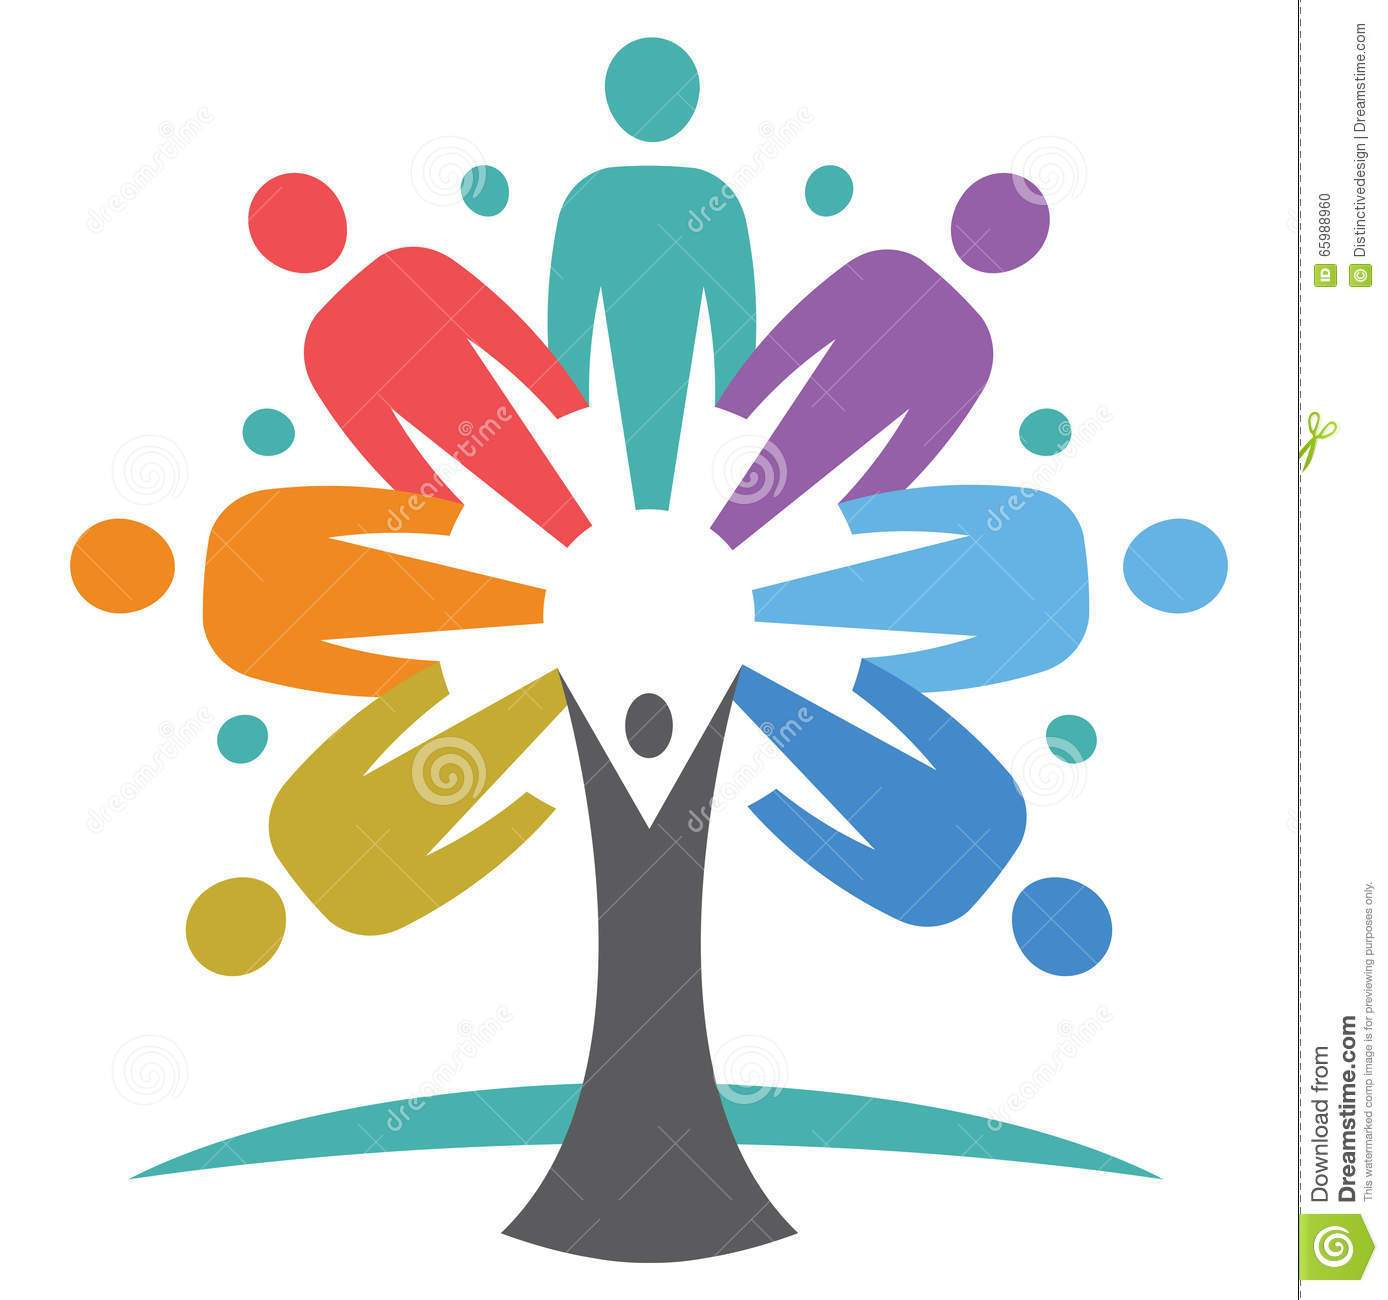 United people clipart » Clipart Portal.